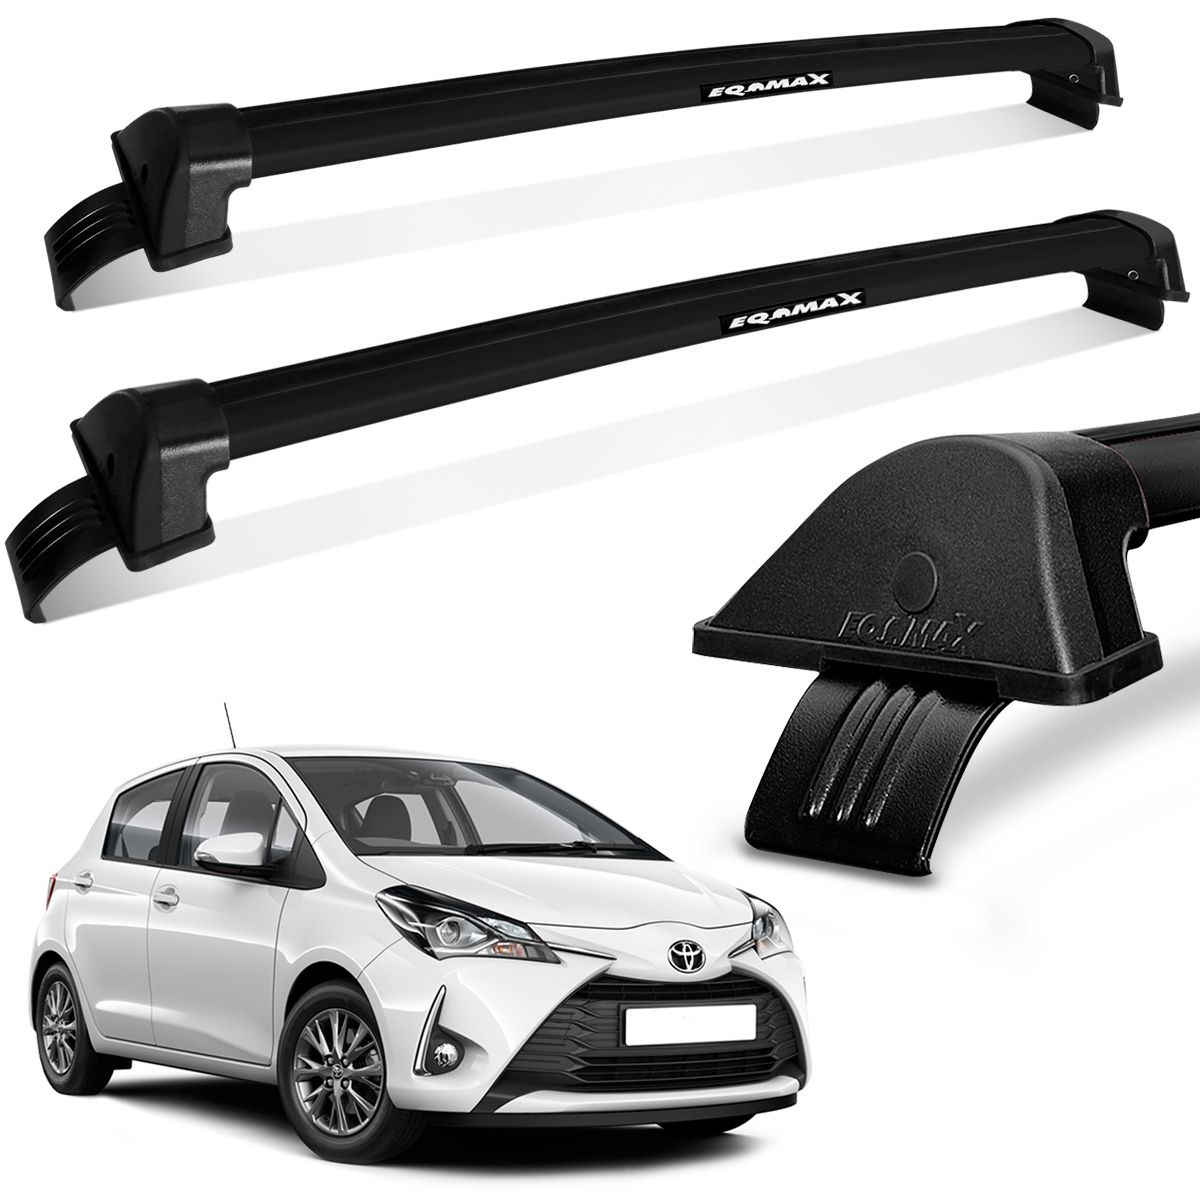 Rack De Teto Yaris 2018 a 2020 Aluminio Preto New Wave